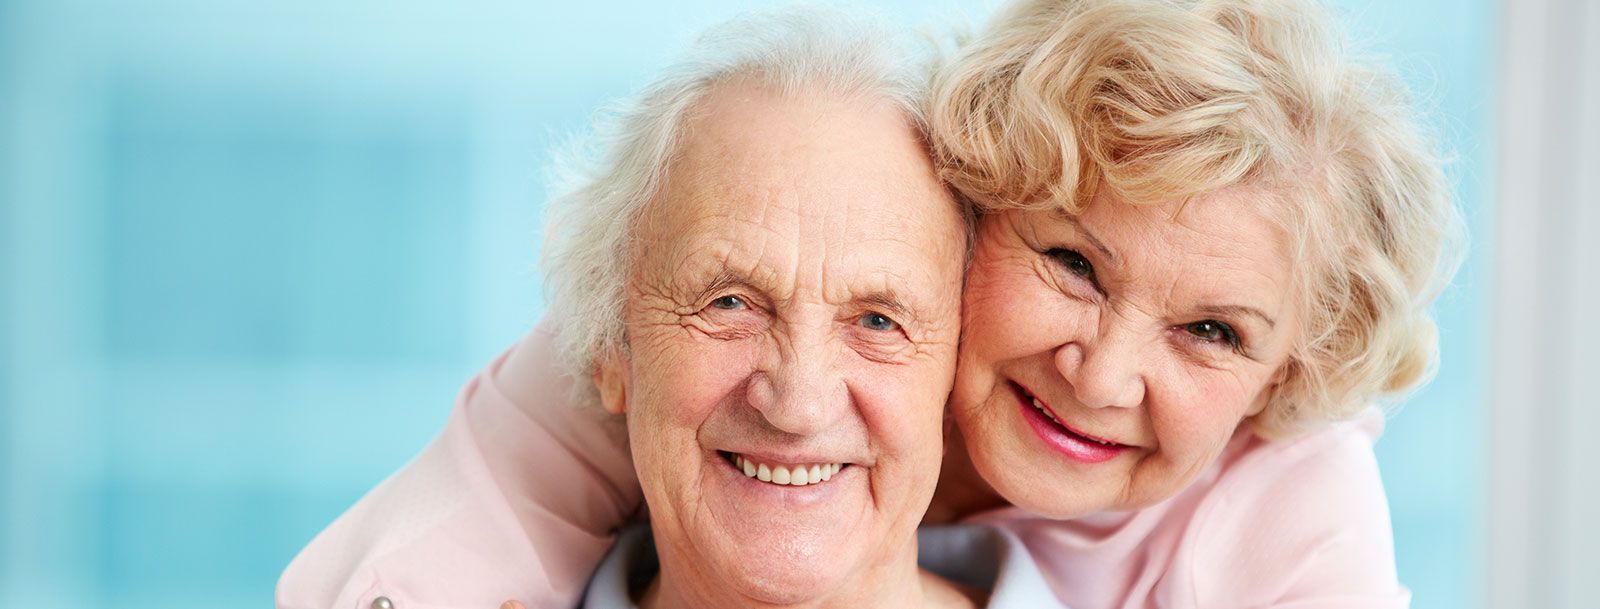 Fort Scott senior living has happy couples